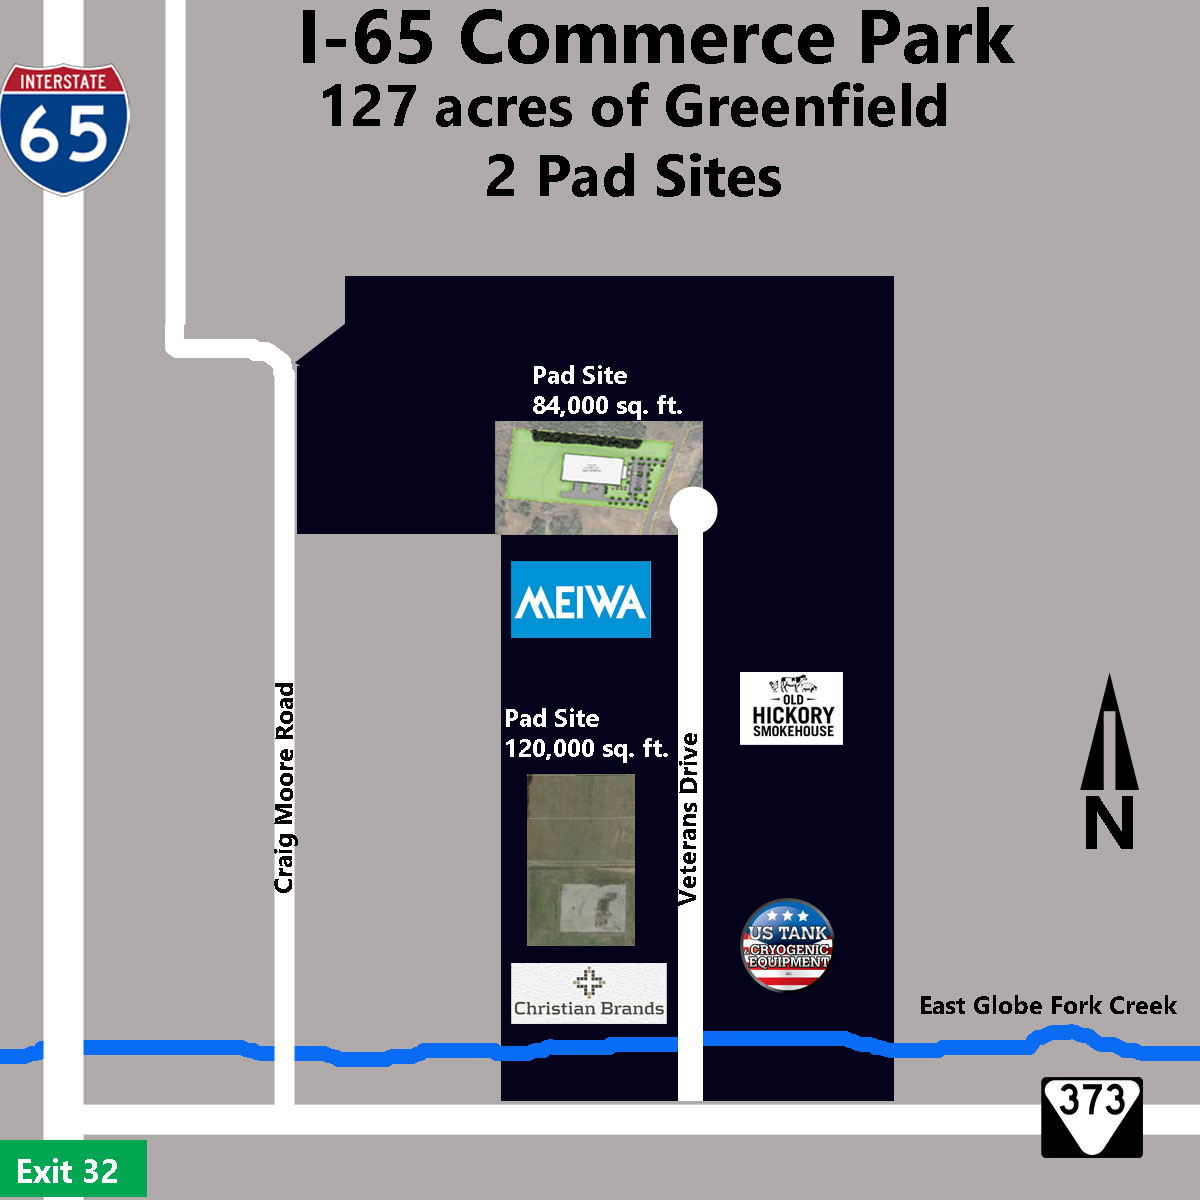 I-65 Commerce Park